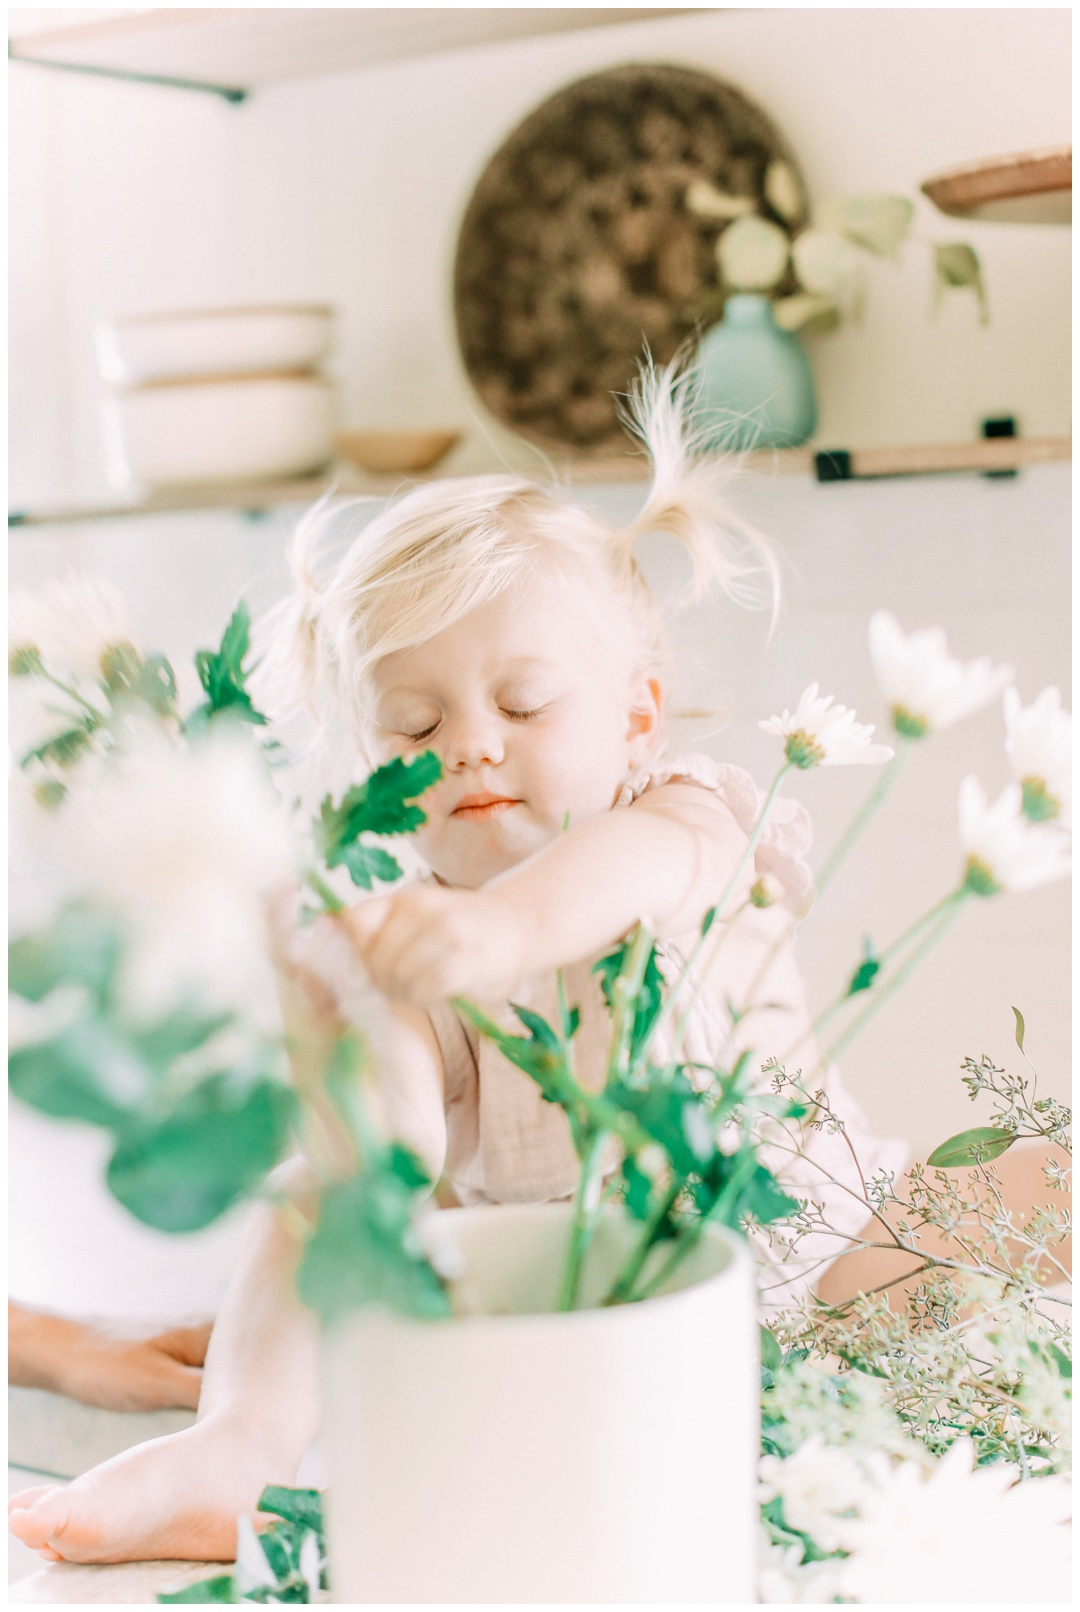 Newport_Beach_Lifestyle_in-Home_Photographer_Newport_Beach_In-Home_Photography_Orange_County_Photographer_Cori_Kleckner_Photography_Orange_County_in-home_Photography_Kristin_Dinsmore_Family_session_1947.jpg